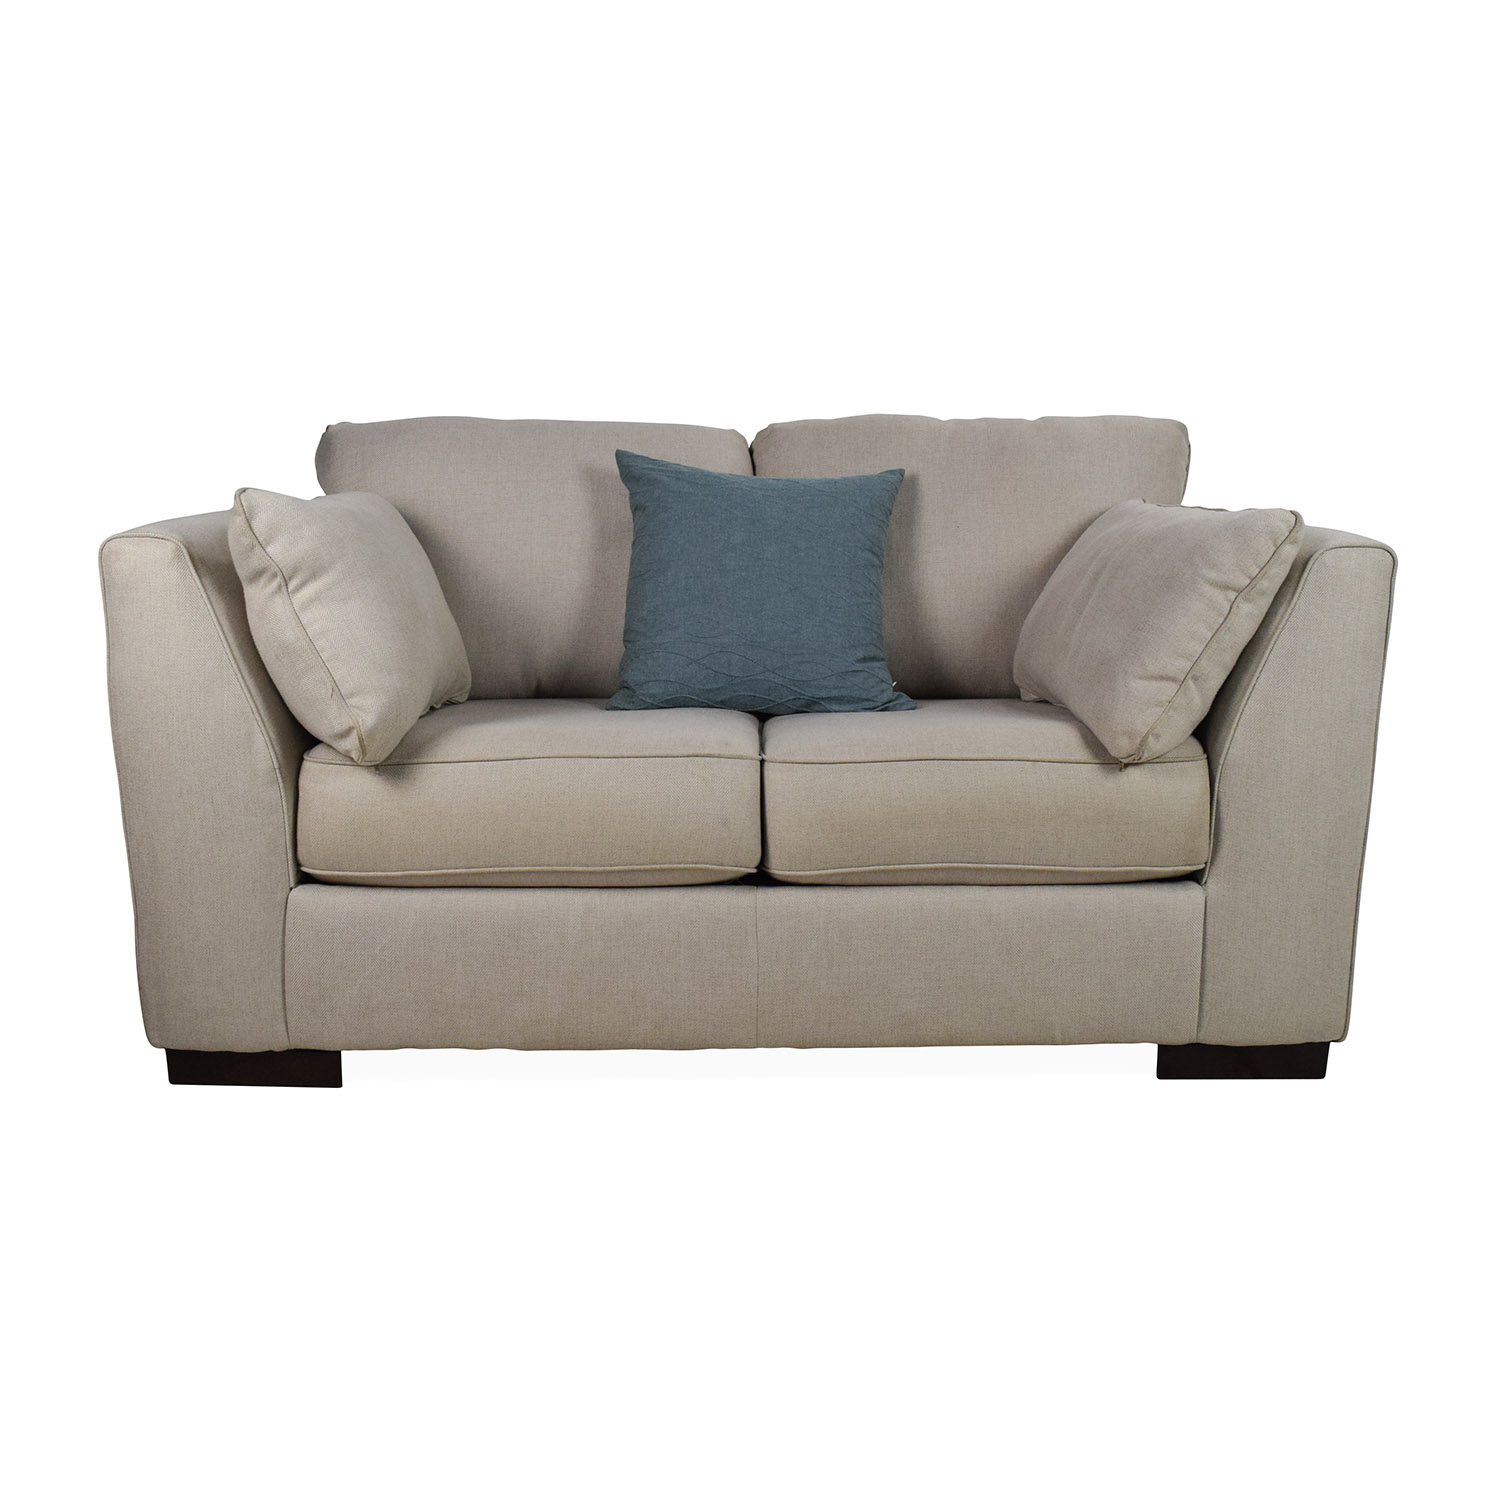 Reclining loveseat ashley furniture gunsmoke alzena power reclining loveseat with console view Ashley couch and loveseat